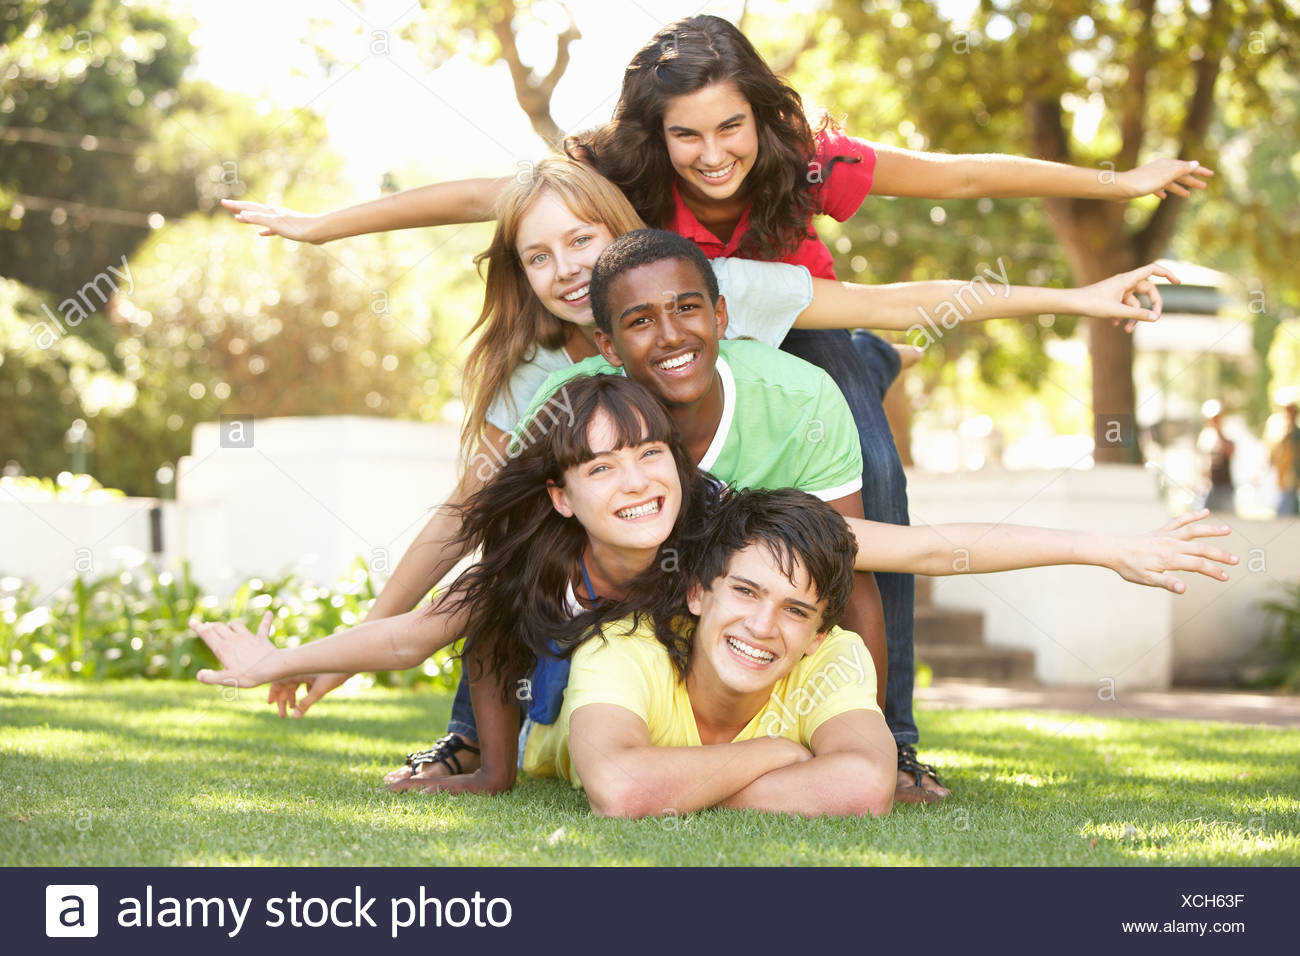 Group Of Teenagers Piled Up In Park - Stock Image